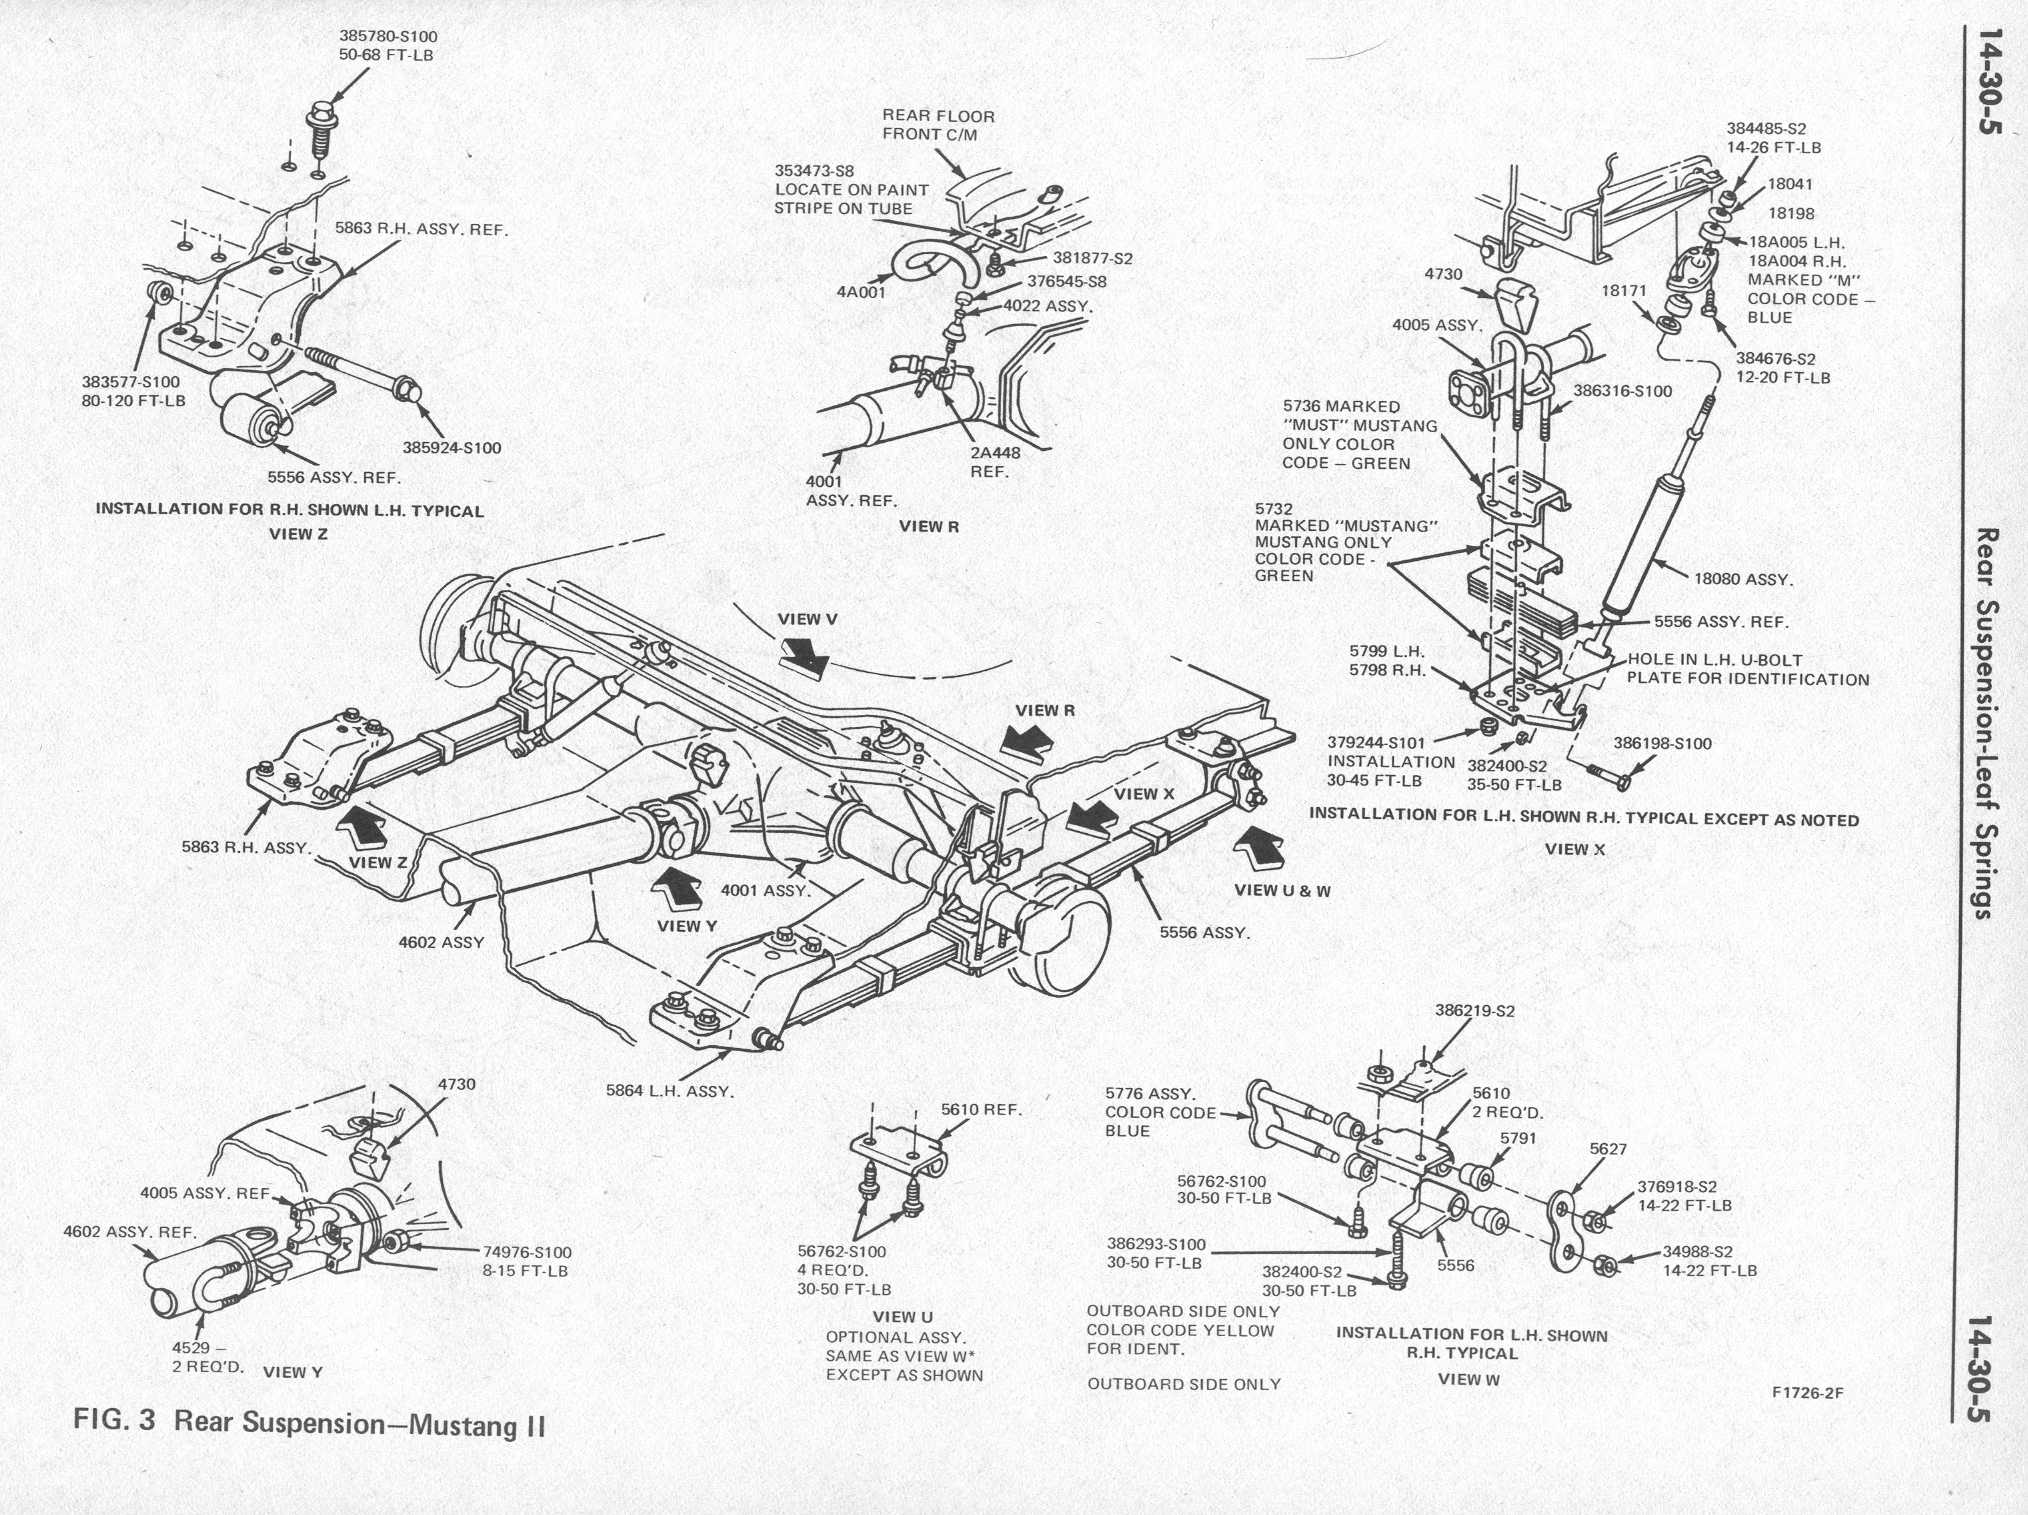 1978 Mustang Ii Ignition Wiring Diagram Fuse Box 1968 Ford The Organization Rh Mustangii Org 3000 65